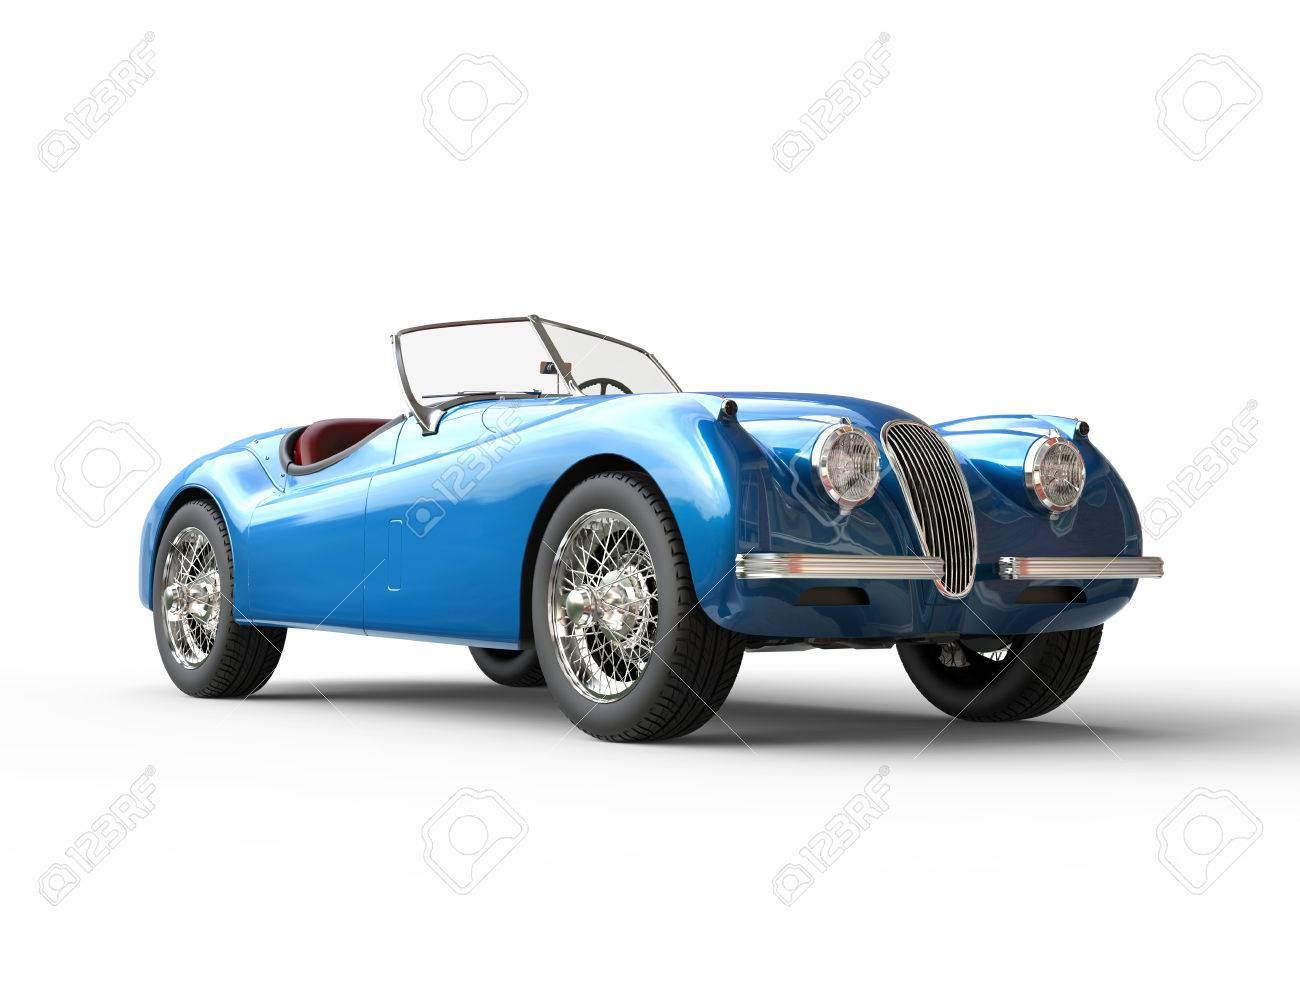 Bright Blue Vintage Car On White Background Image Shot In Ultra